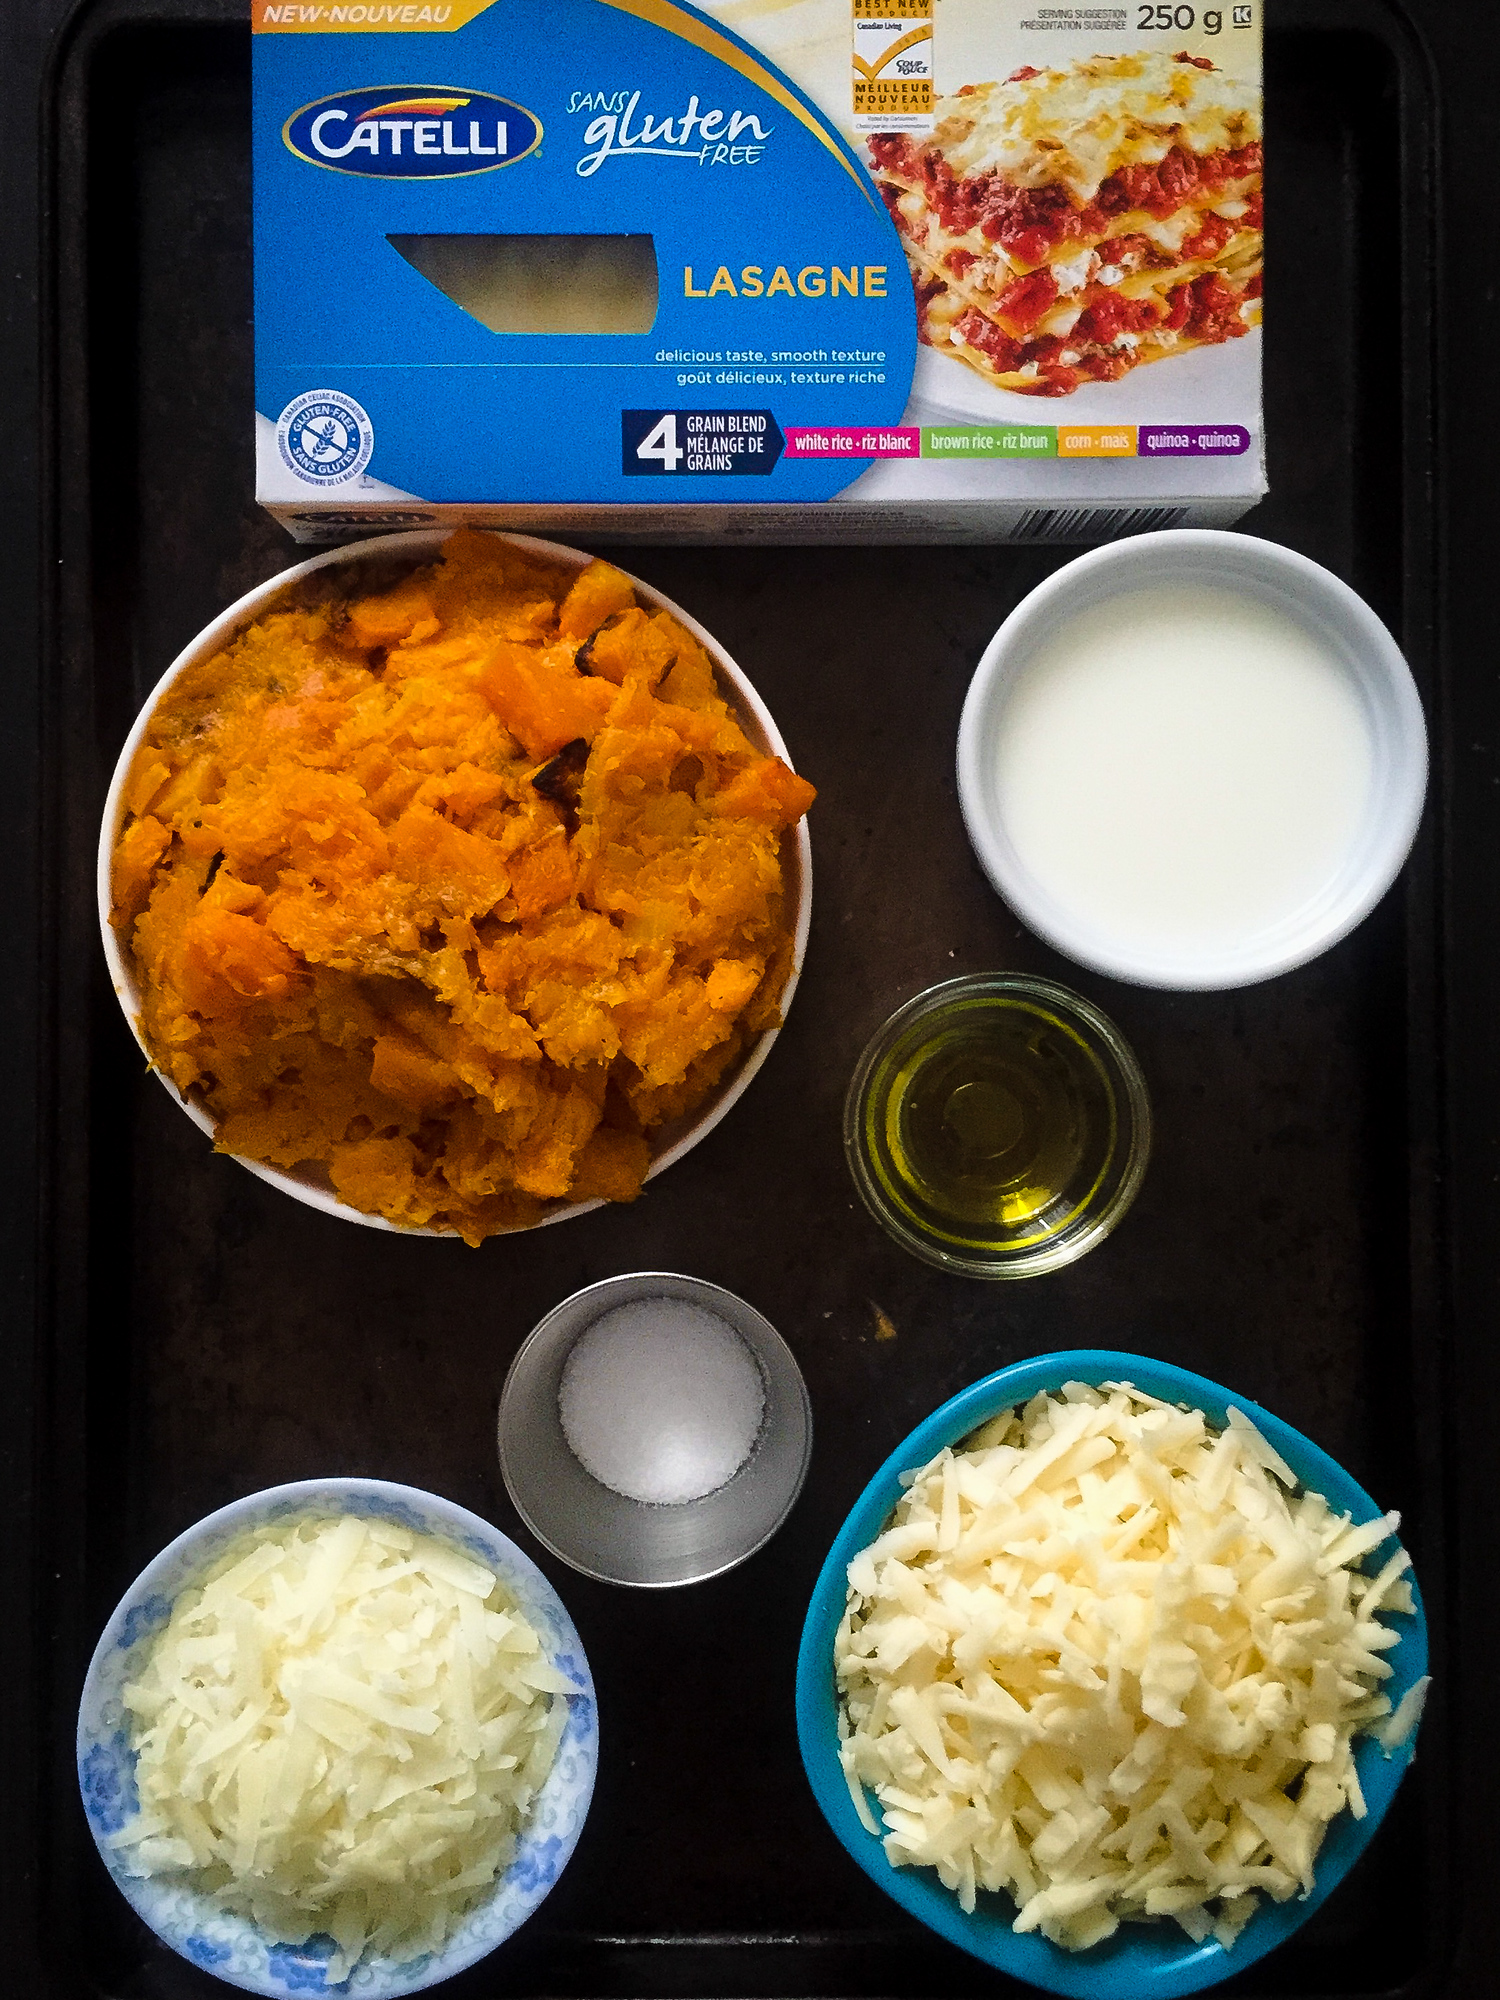 "SO EASY!> Butternut squash lasagna that's also gluten-free! Check out this easy lasagna recipe that everyone loves."" width=""1500″ height=""2000″></a></p><p>Lasagna isn't the only gluten free pasta, Catelli also offers penne rigate, fusilli, macaroni, spaghetti and spaghettini. There's no cholesterol or preservatives in the pastas, which are produced in Catelli's dedicated gluten free facility.</p><p style="